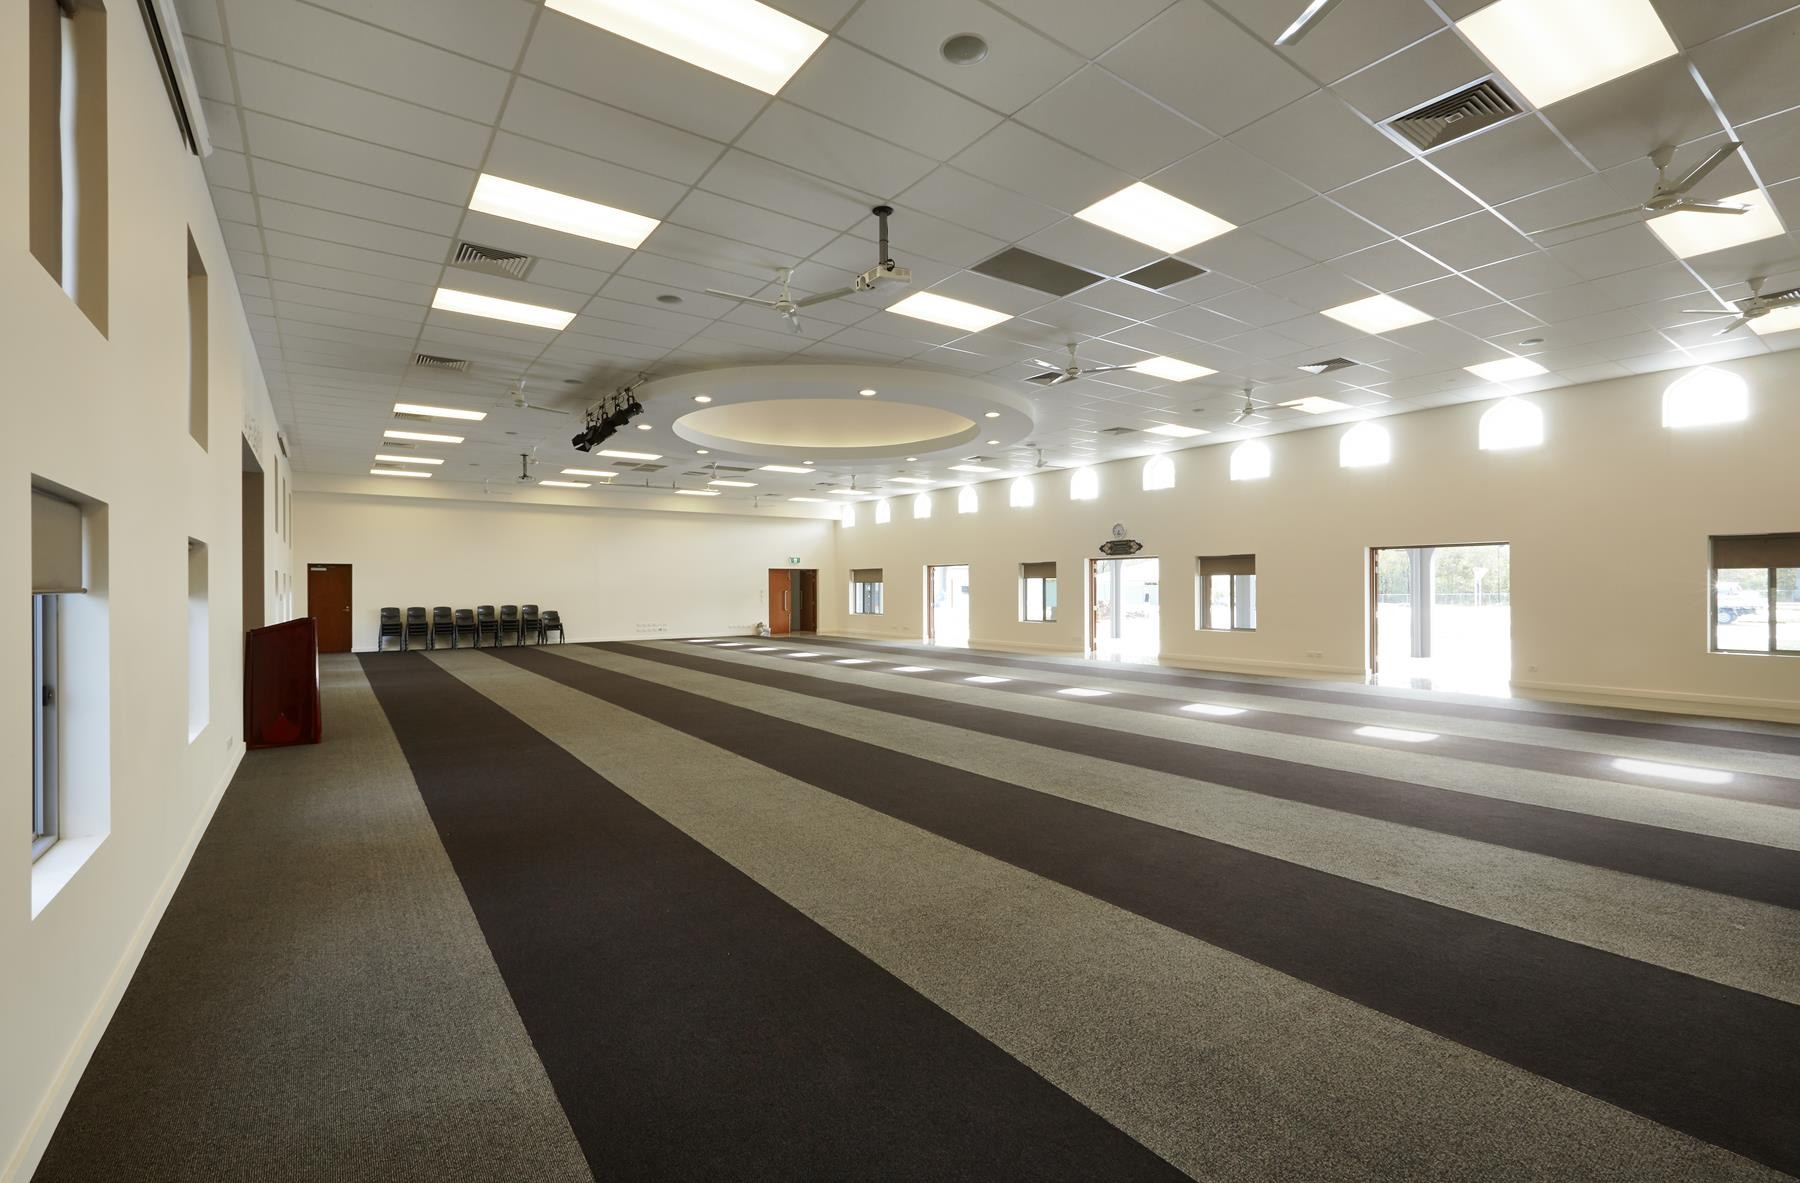 Mosque_stockleigh (6)